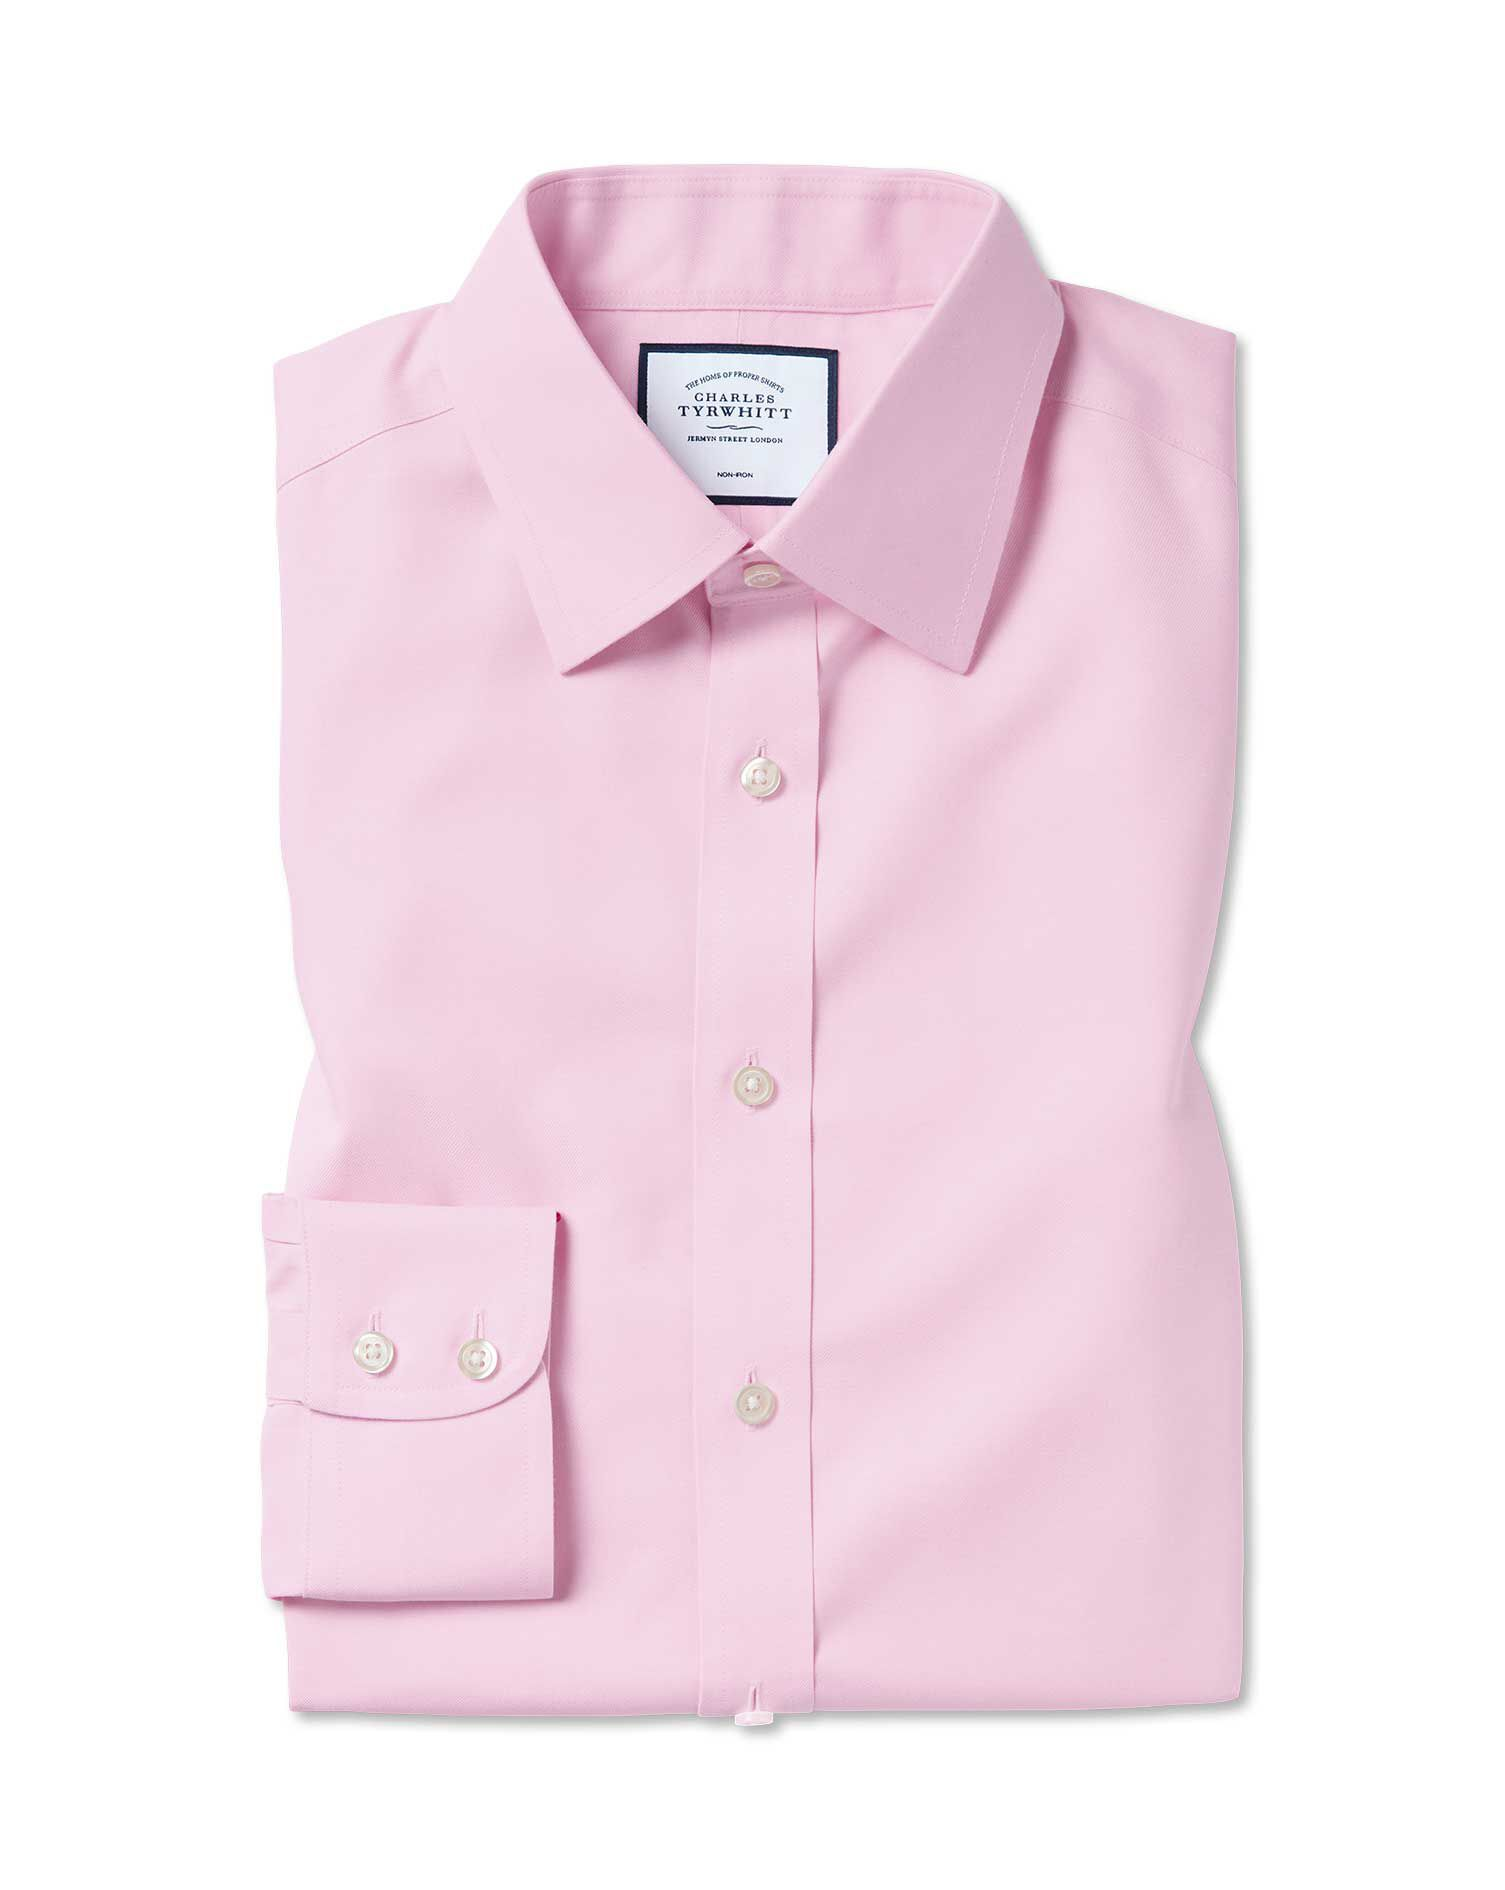 Slim Fit Non-Iron Twill Pink Cotton Formal Shirt Single Cuff Size 15/32 by Charles Tyrwhitt